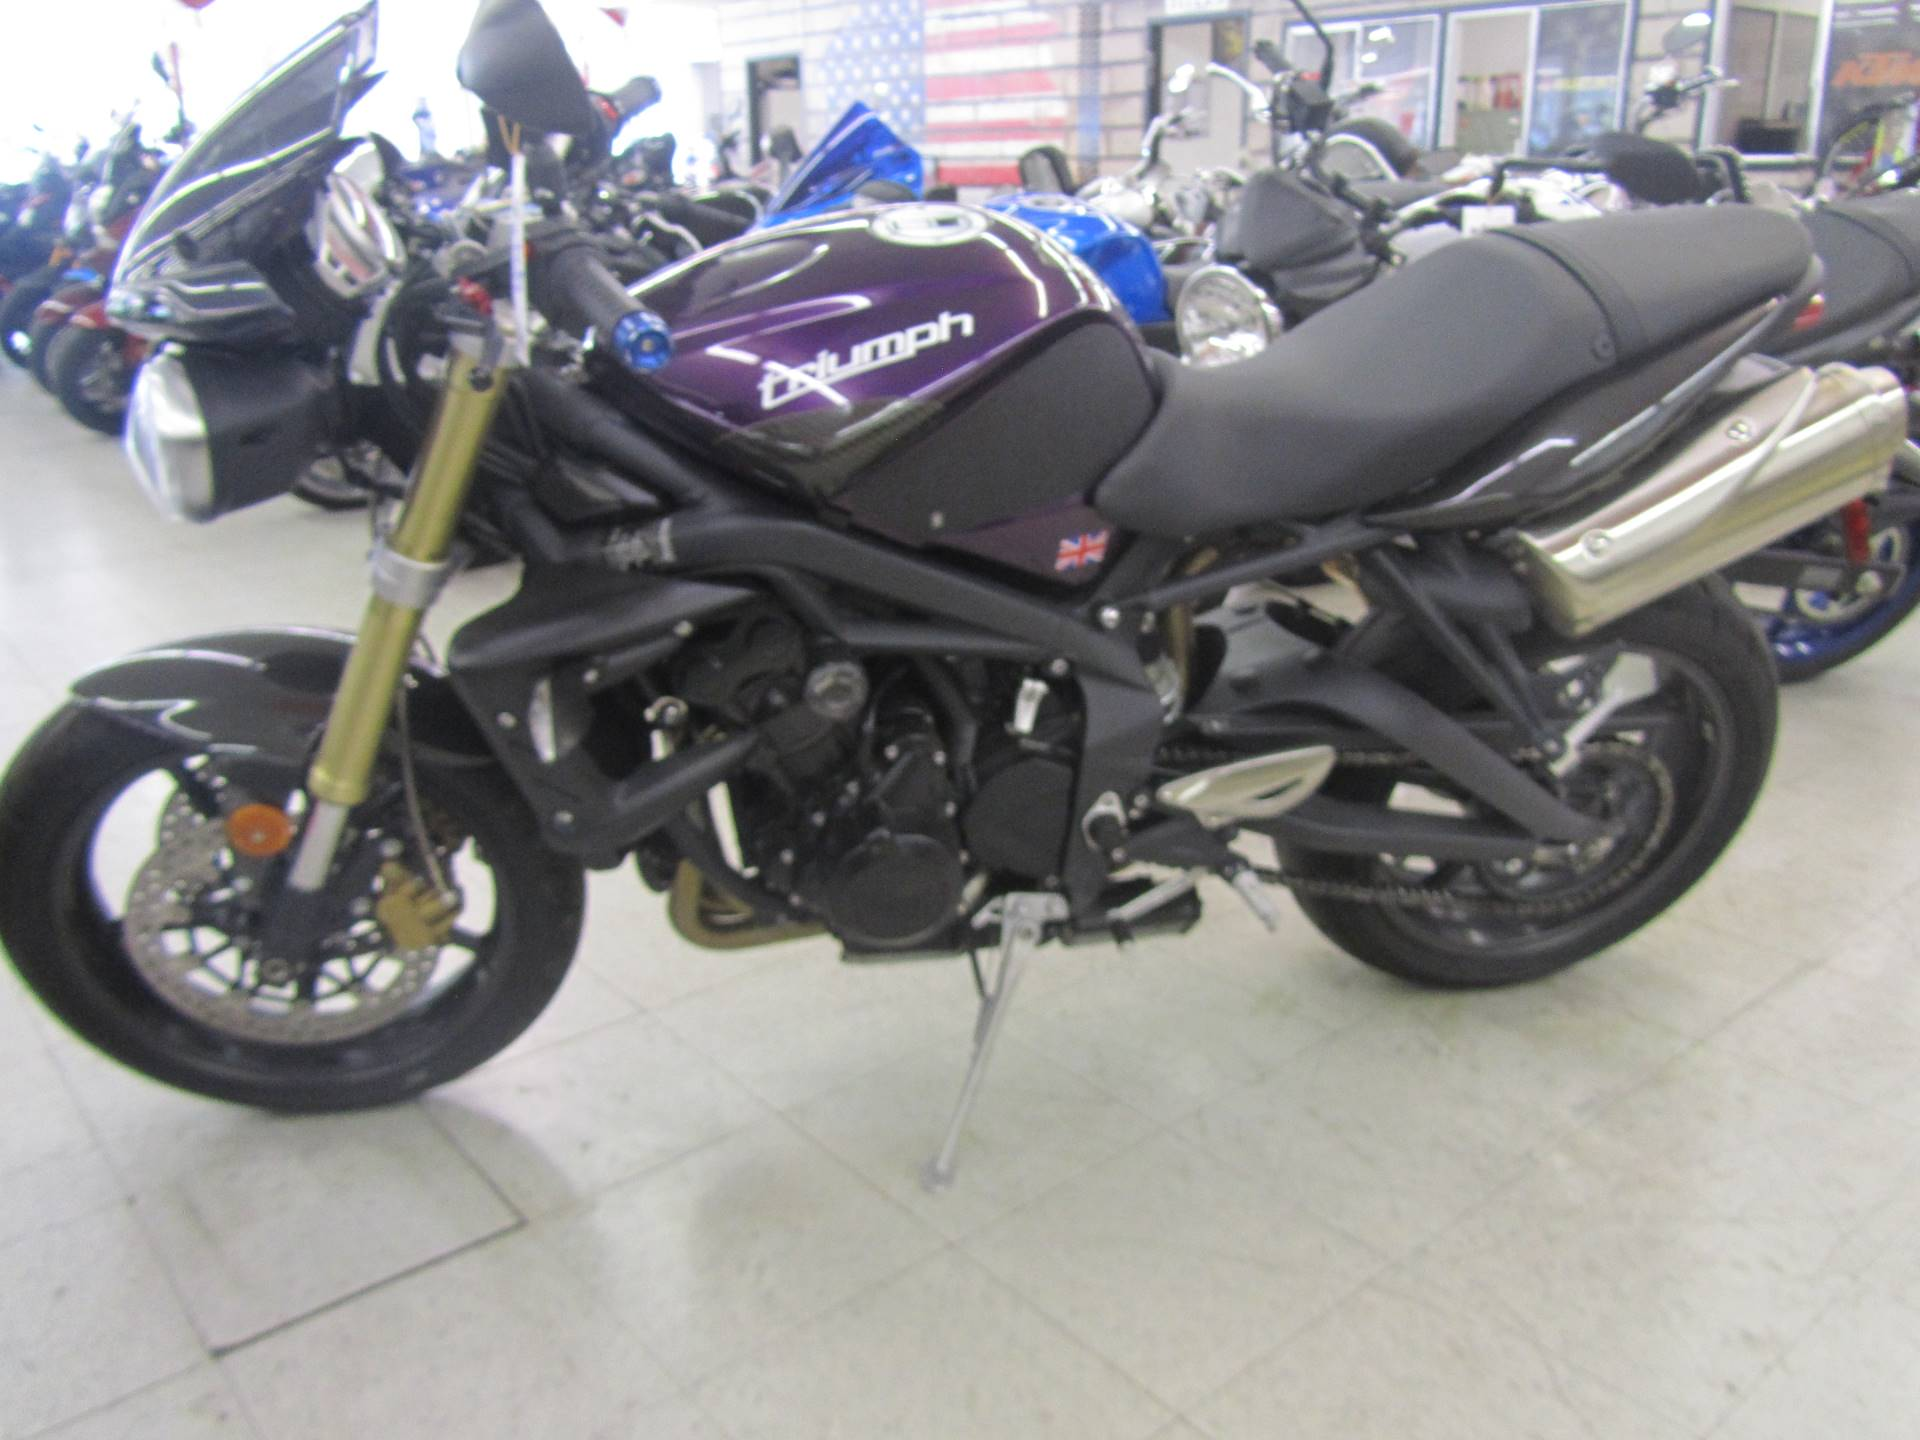 2012 Triumph Street Triple in Colorado Springs, Colorado